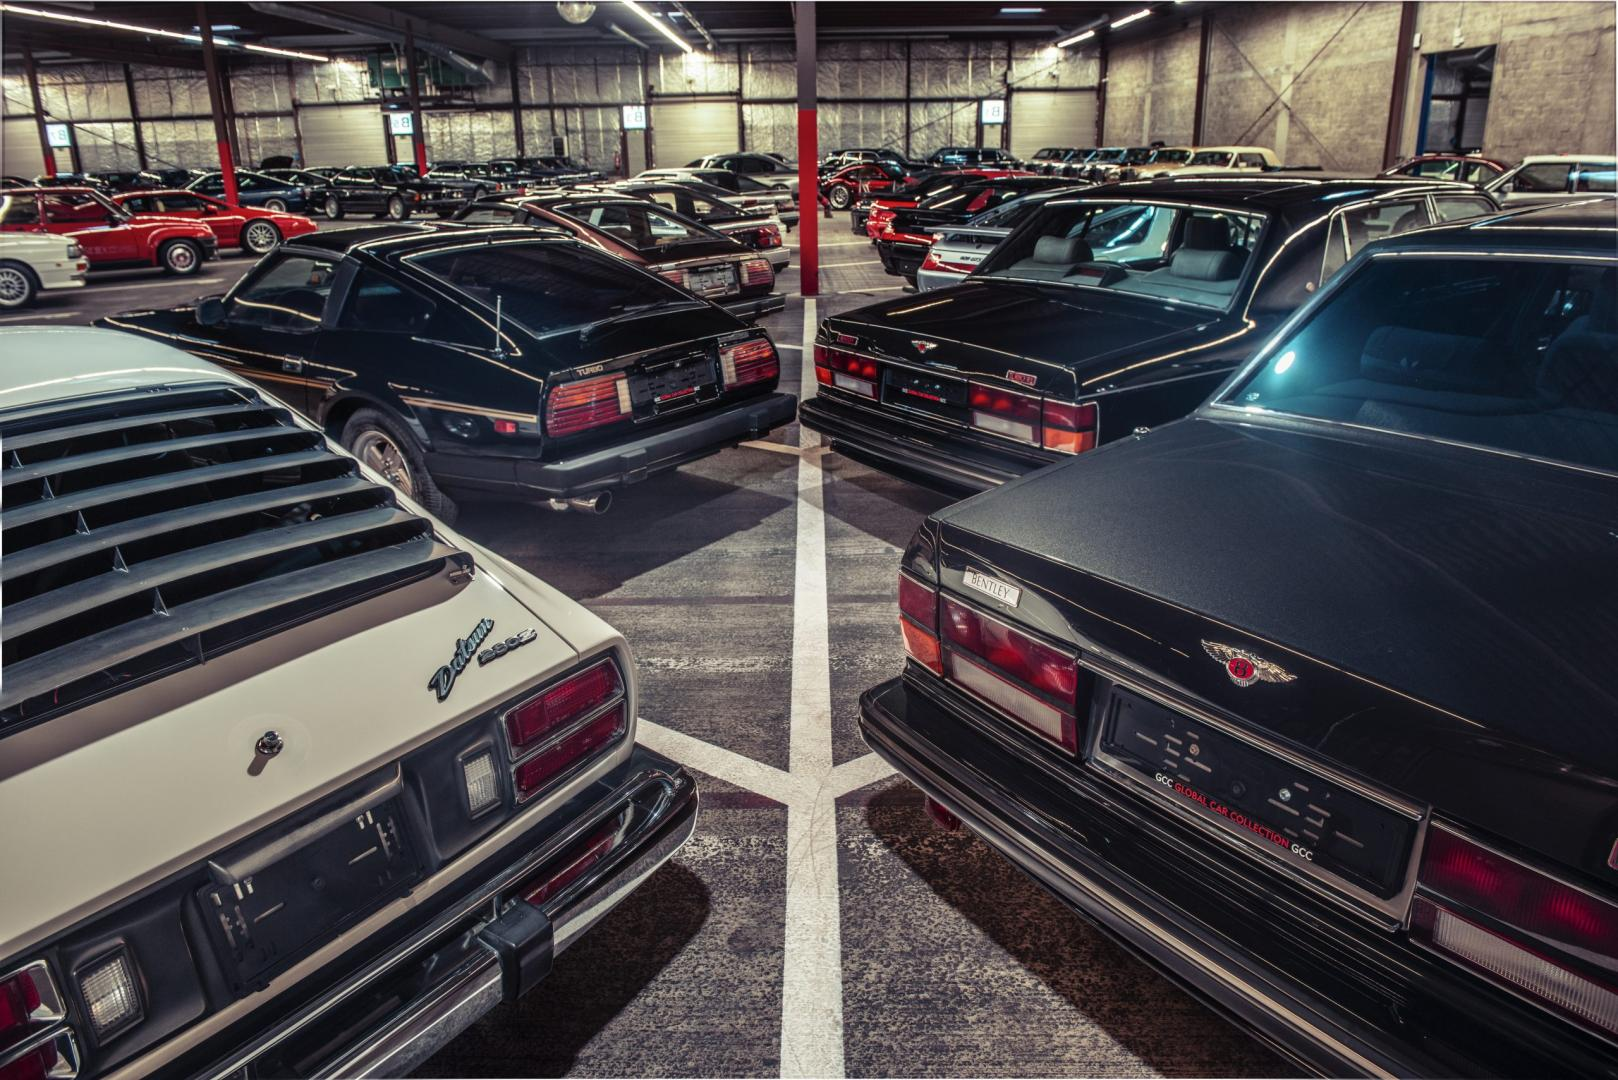 The Youngtimer Collection